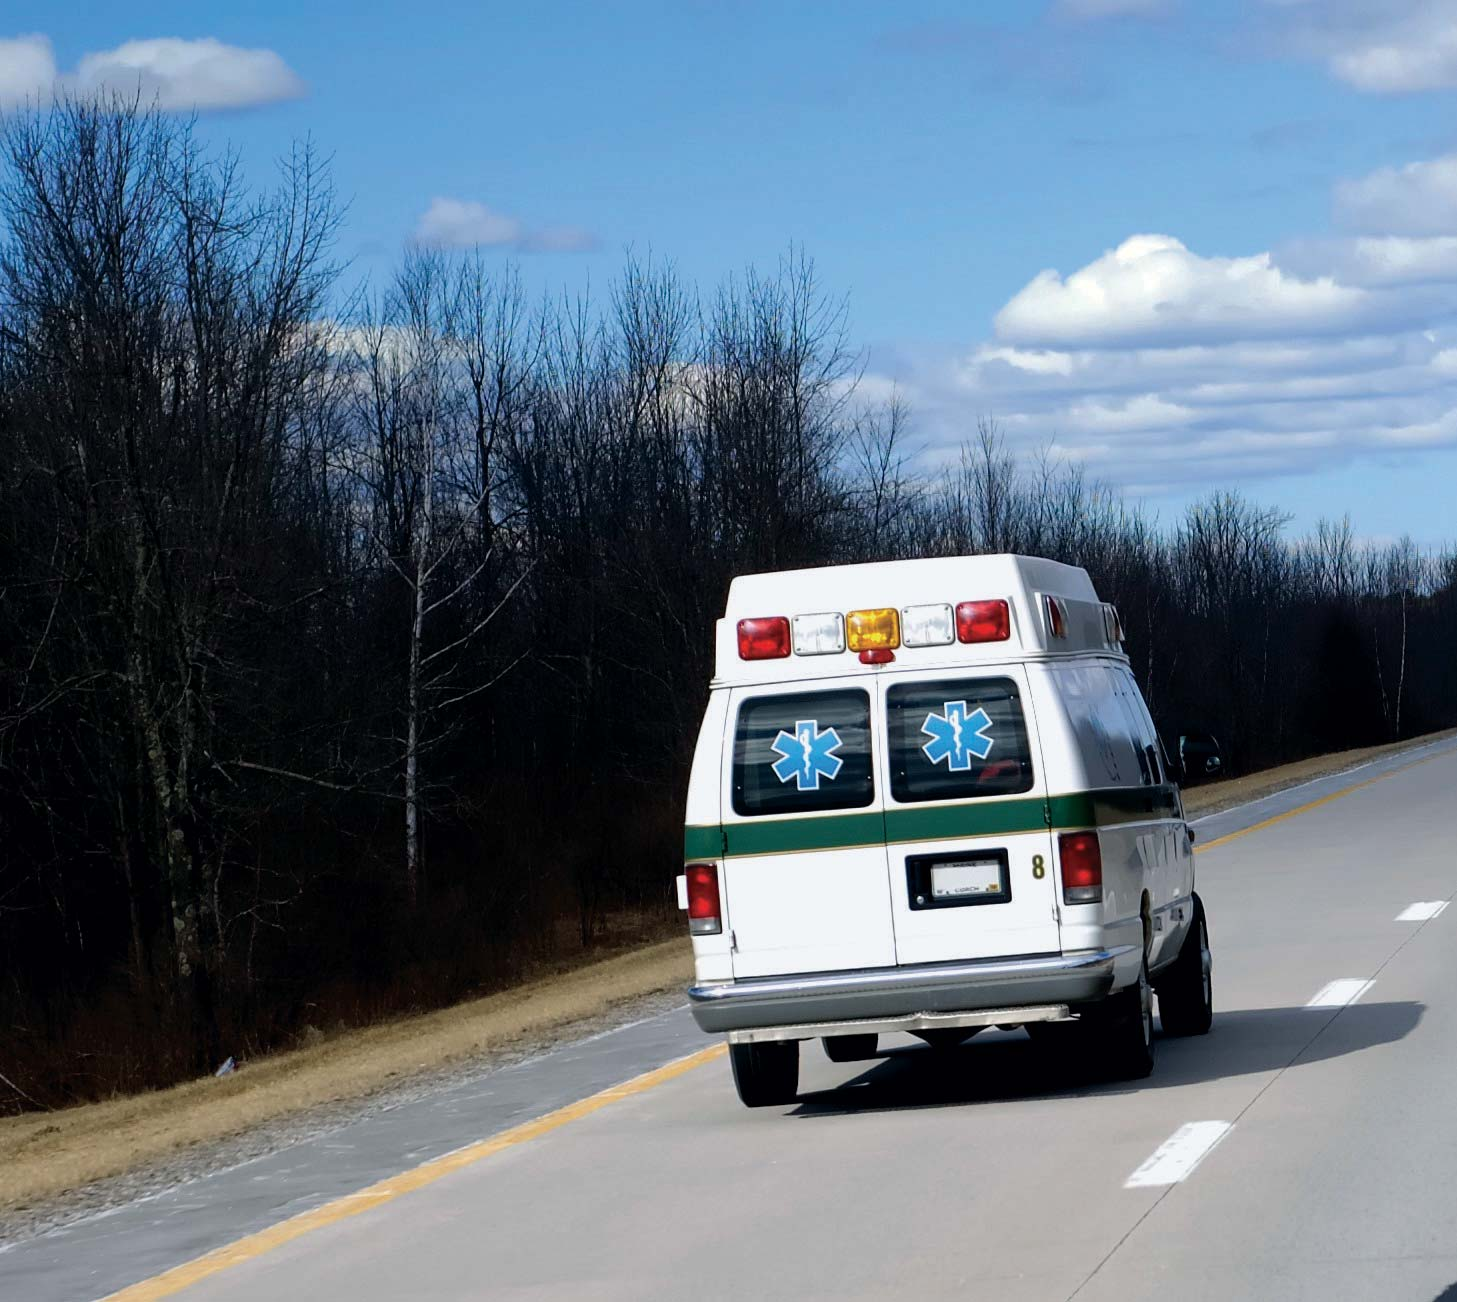 Medicare cut to ambulance pay threatens dialysis patients